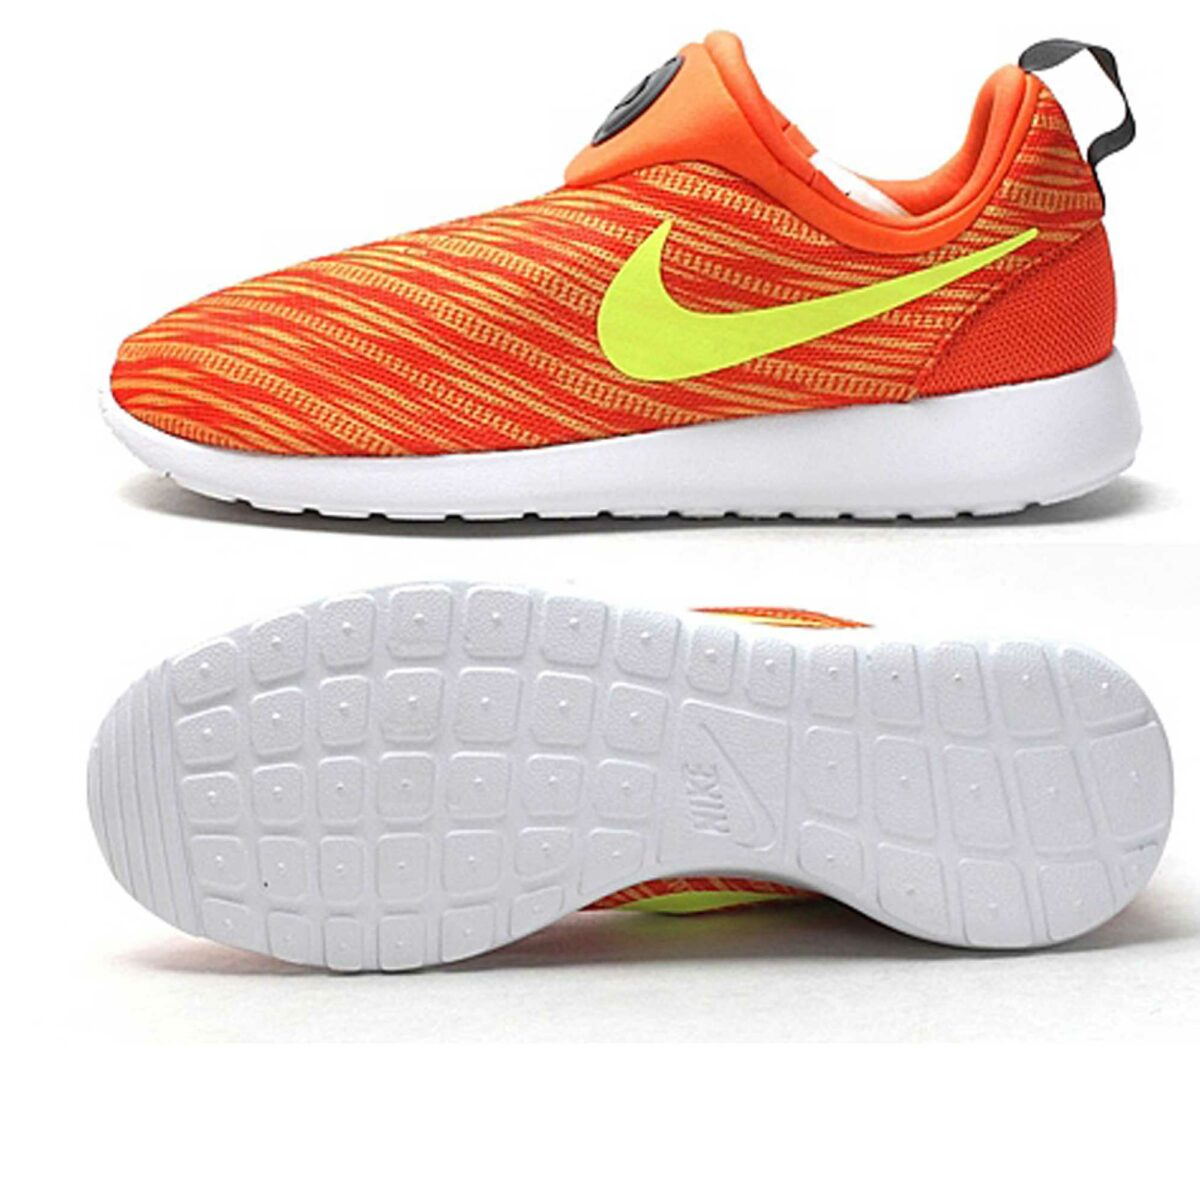 nike roshe run slip on gpx orange 644433_800 купить